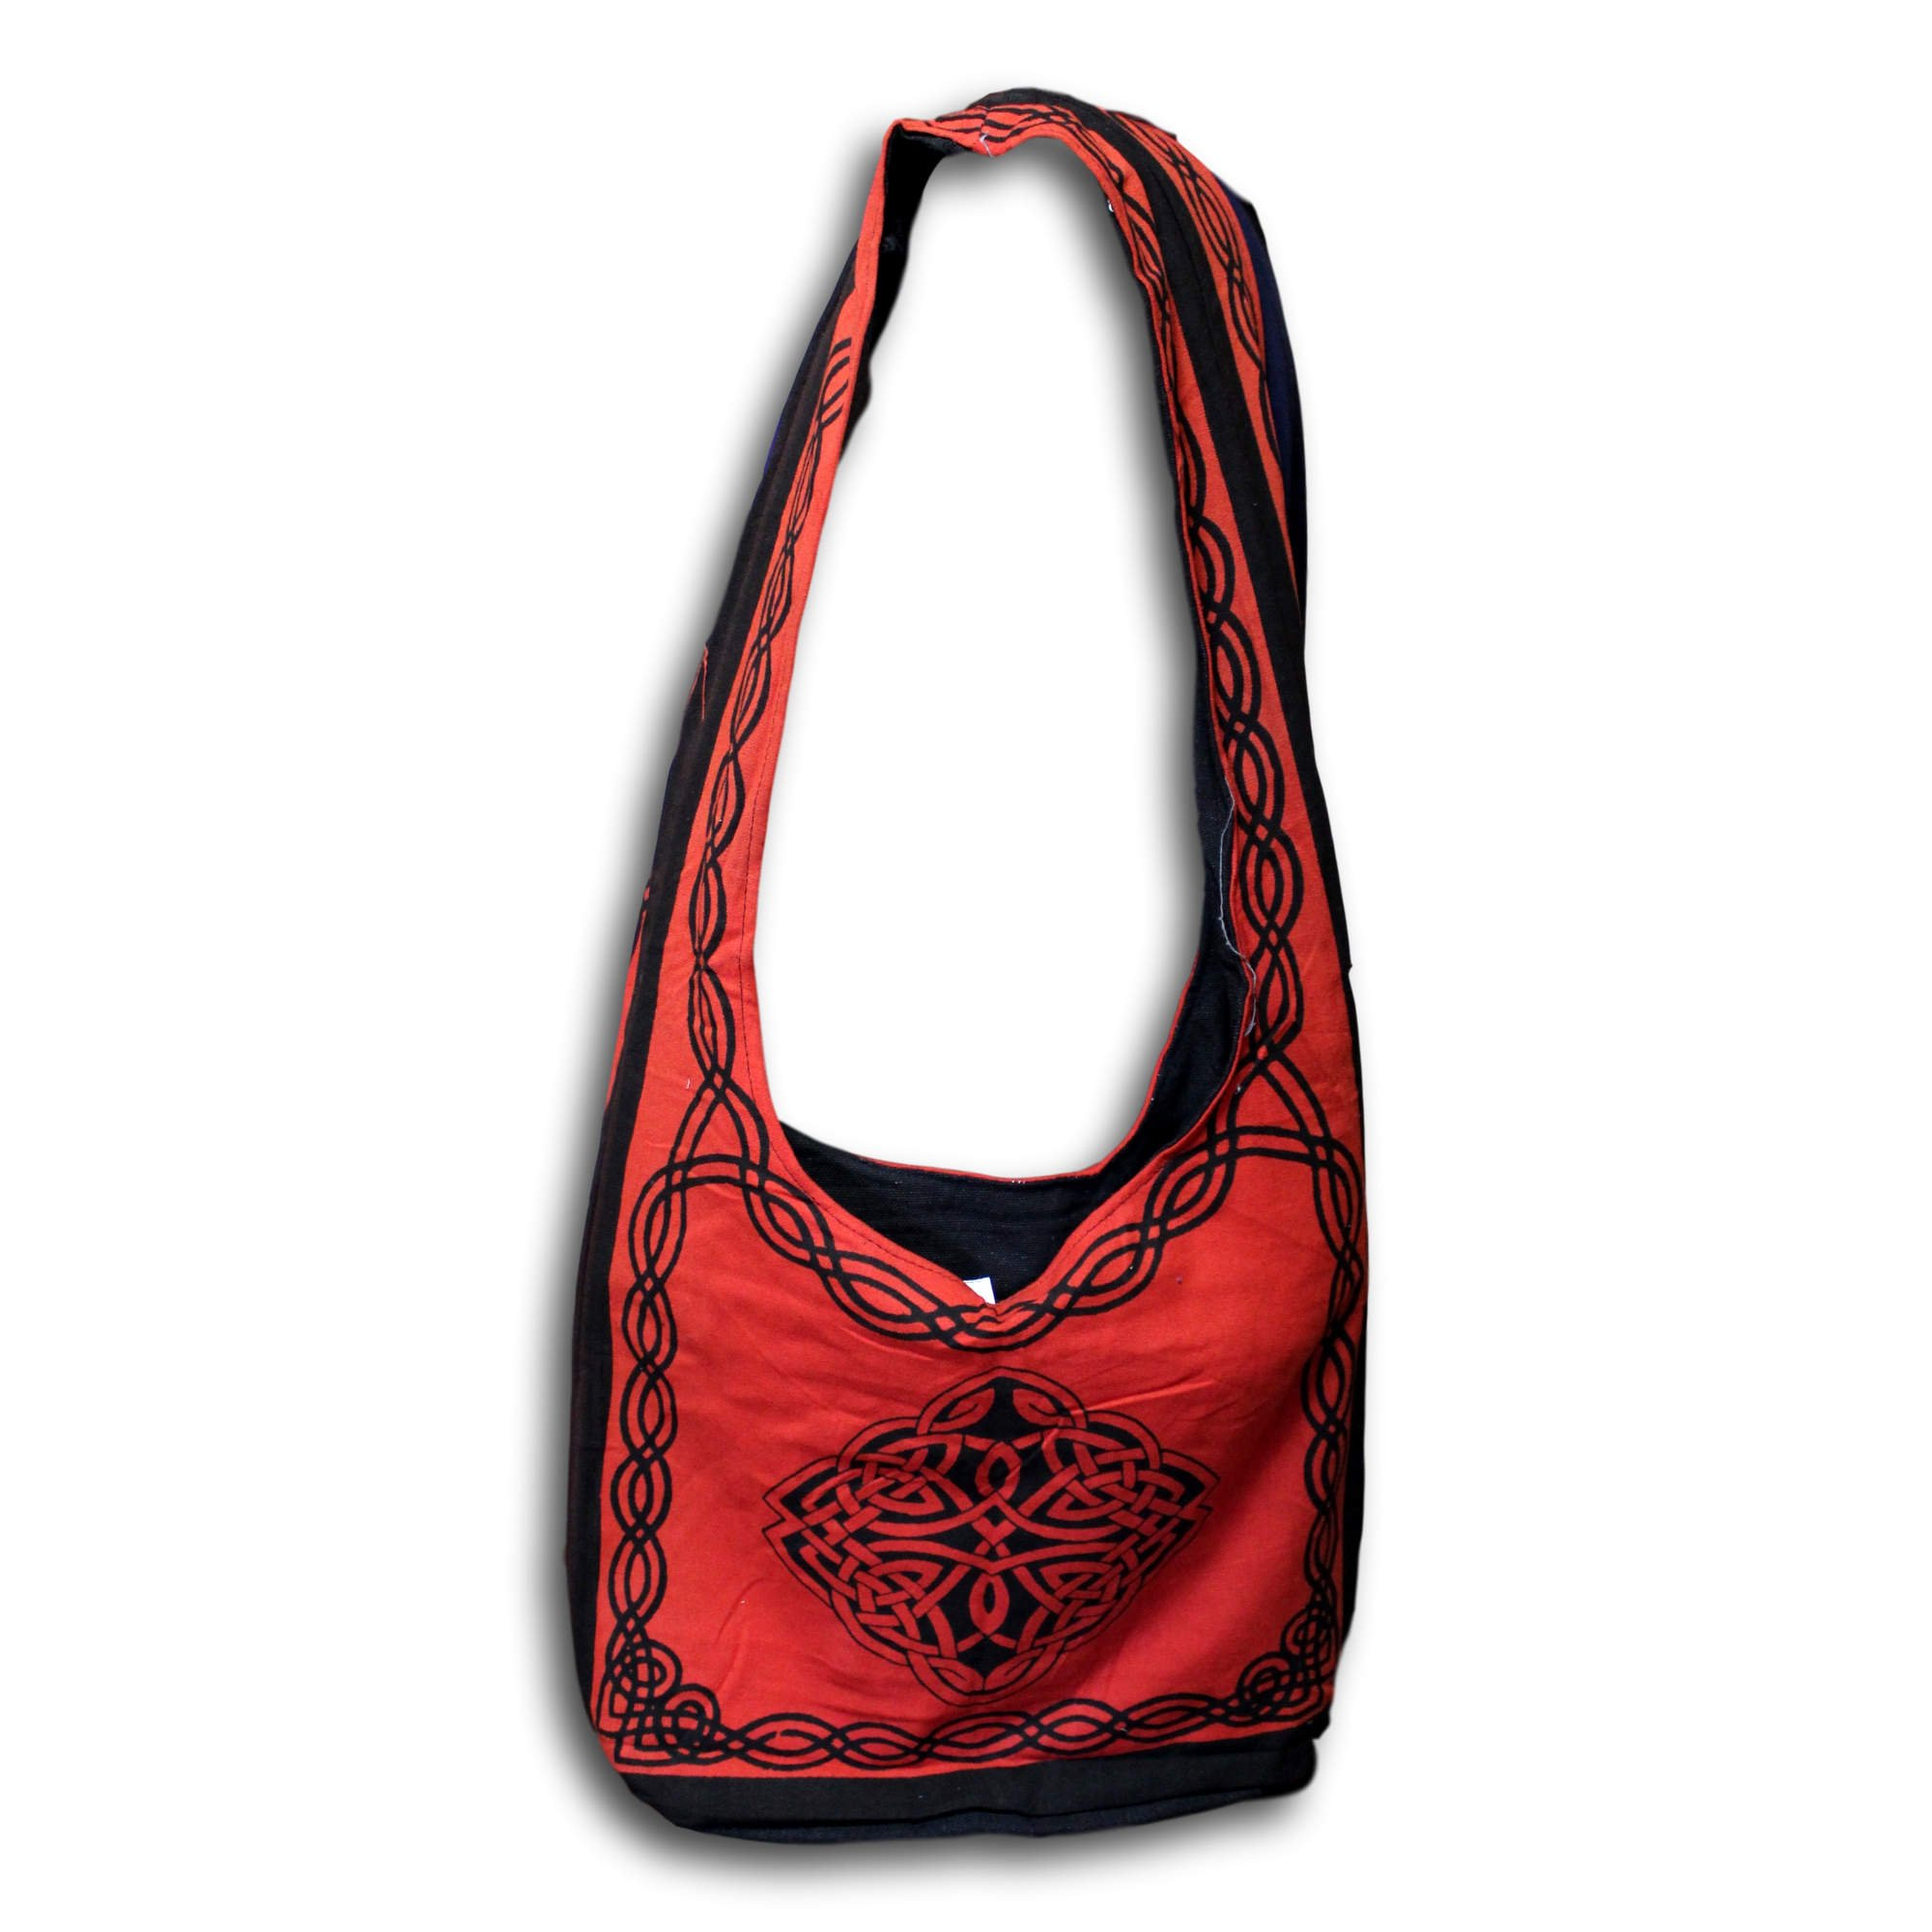 Celtic Bag Hobo Cotton Bag Fabric Bags Shoulder Bags for Shopping Work School Tote Bag Flat Bottom 15 x 12 inches (Red)